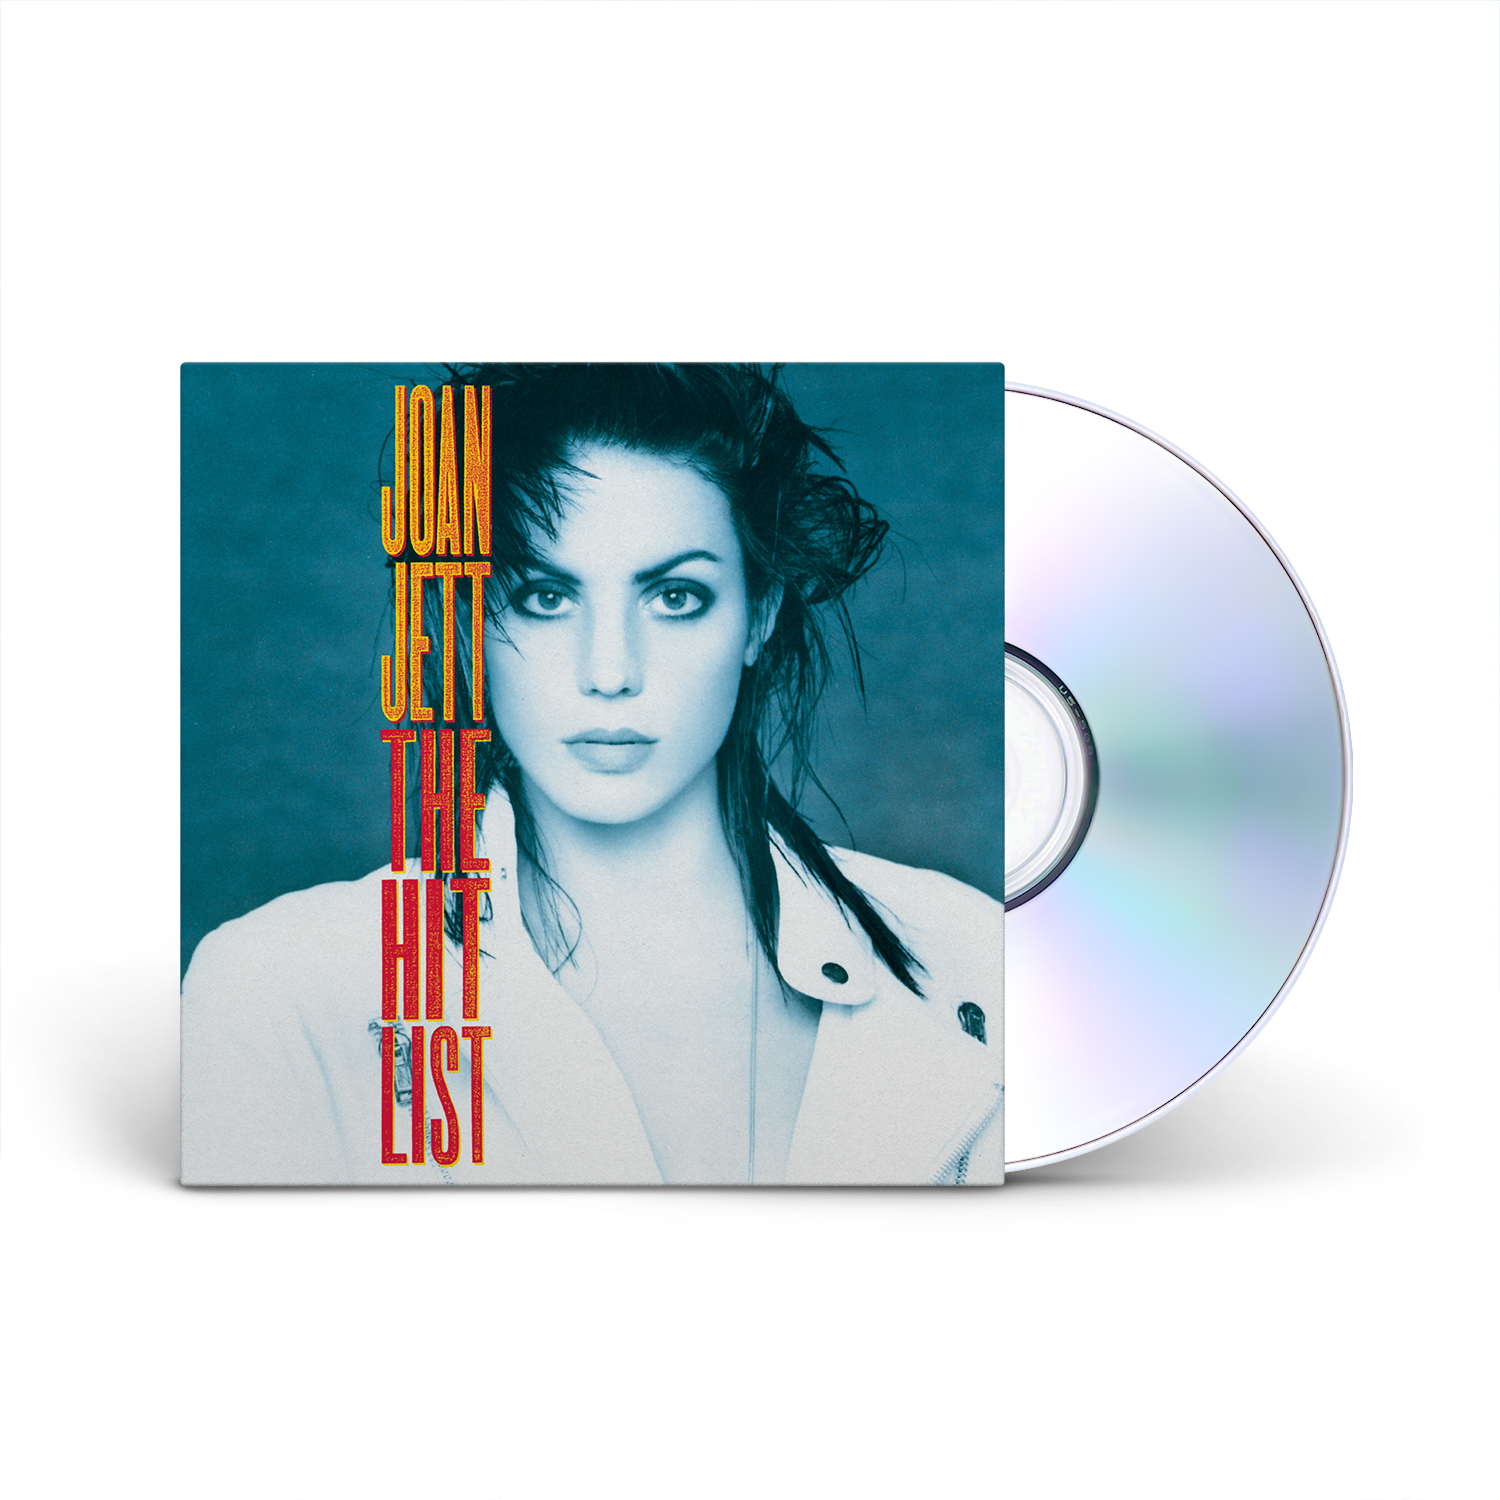 Joan Jett: The Hits List CD